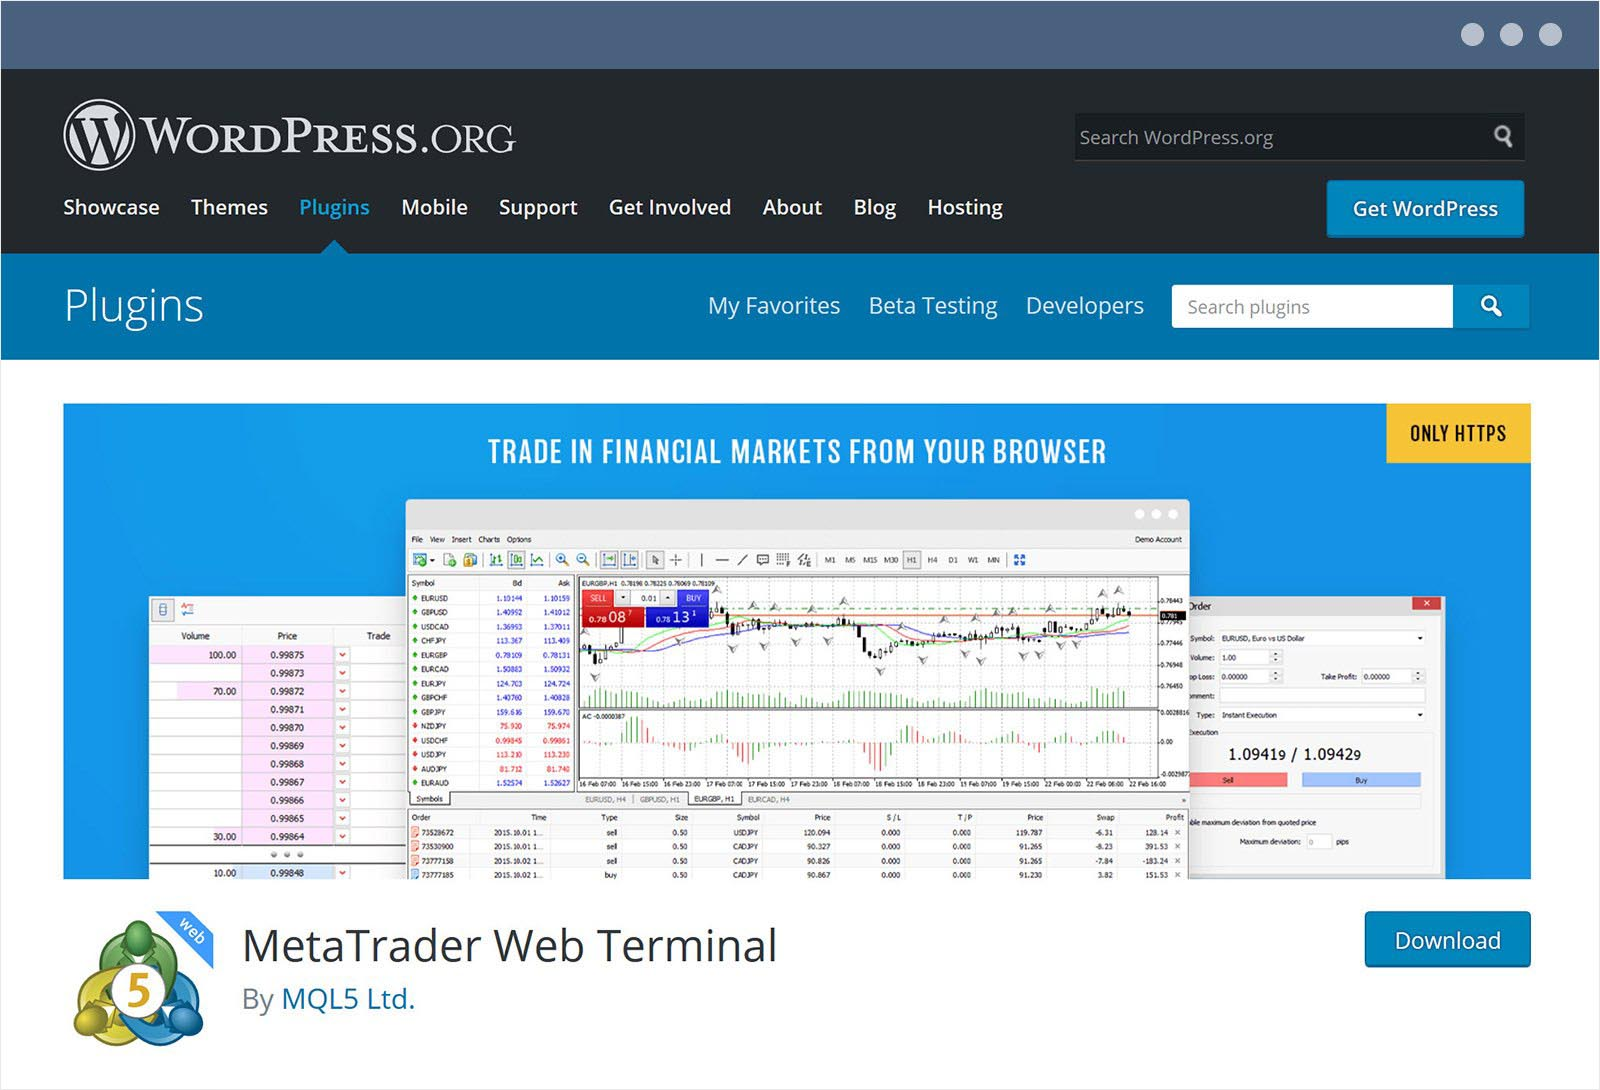 Das MetaTrader Webterminal Plugin für WordPress